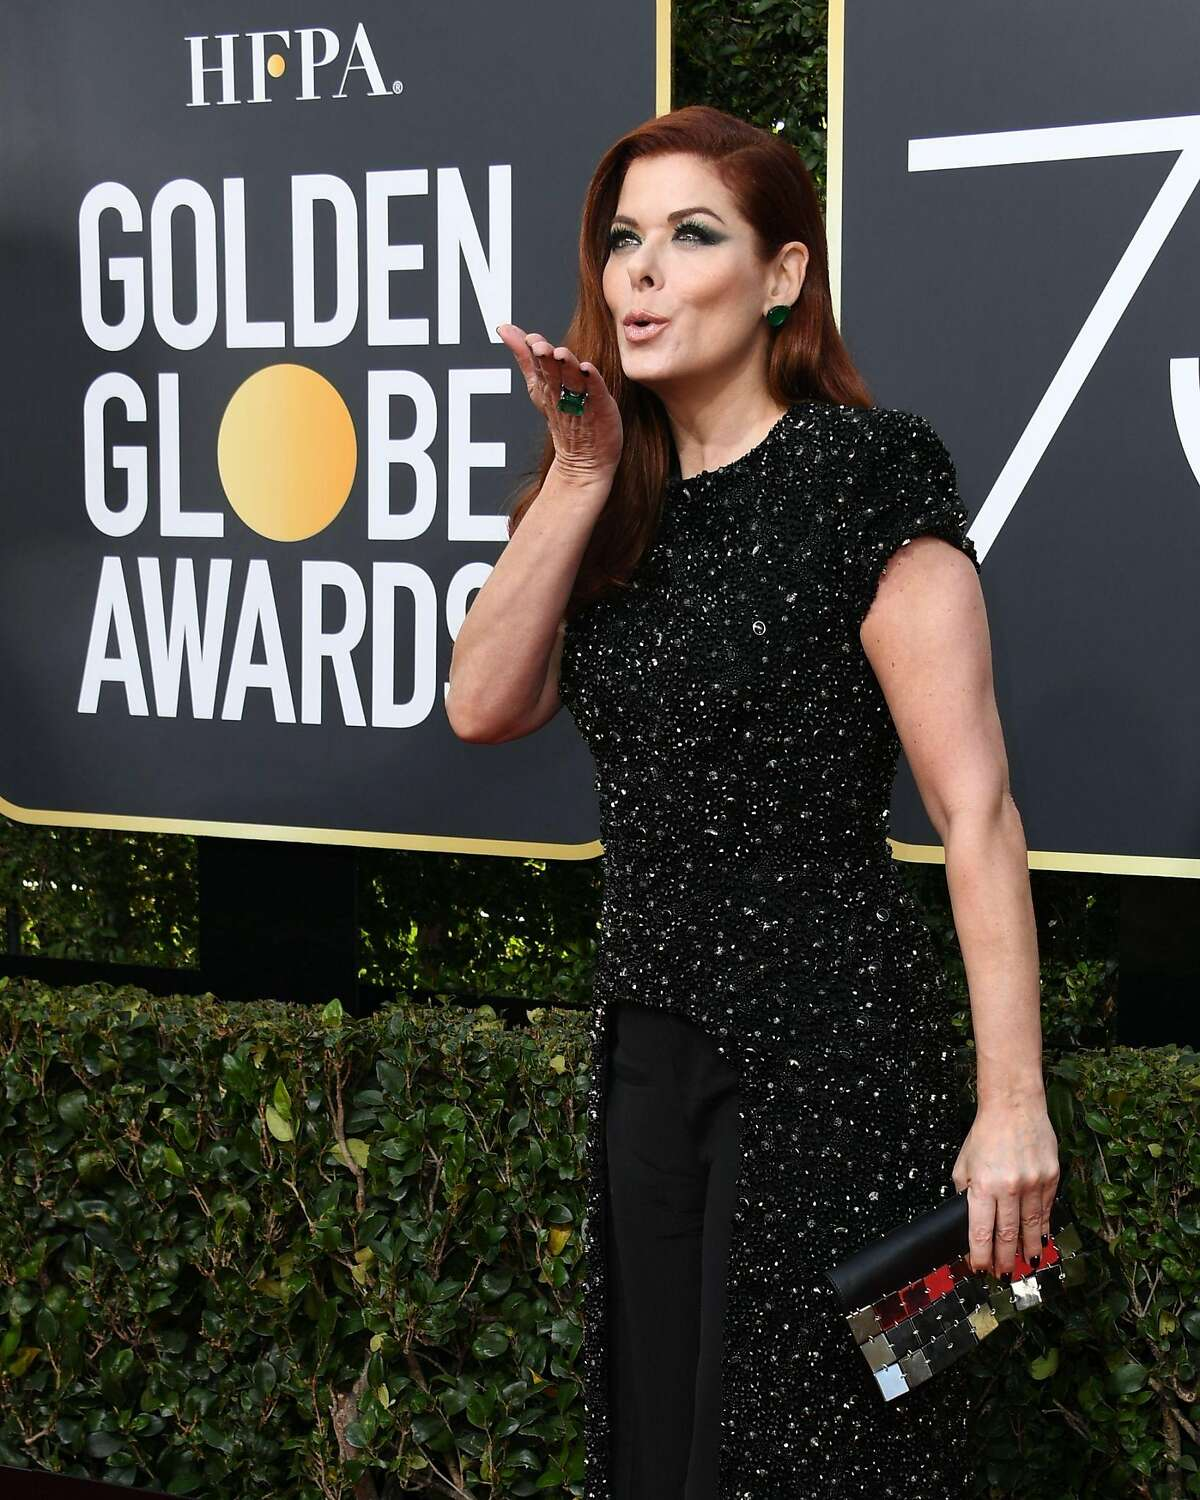 Actress Debra Messing arrives for the 75th Golden Globe Awards on January 7, 2018, in Beverly Hills, California. / AFP PHOTO / VALERIE MACONVALERIE MACON/AFP/Getty Images